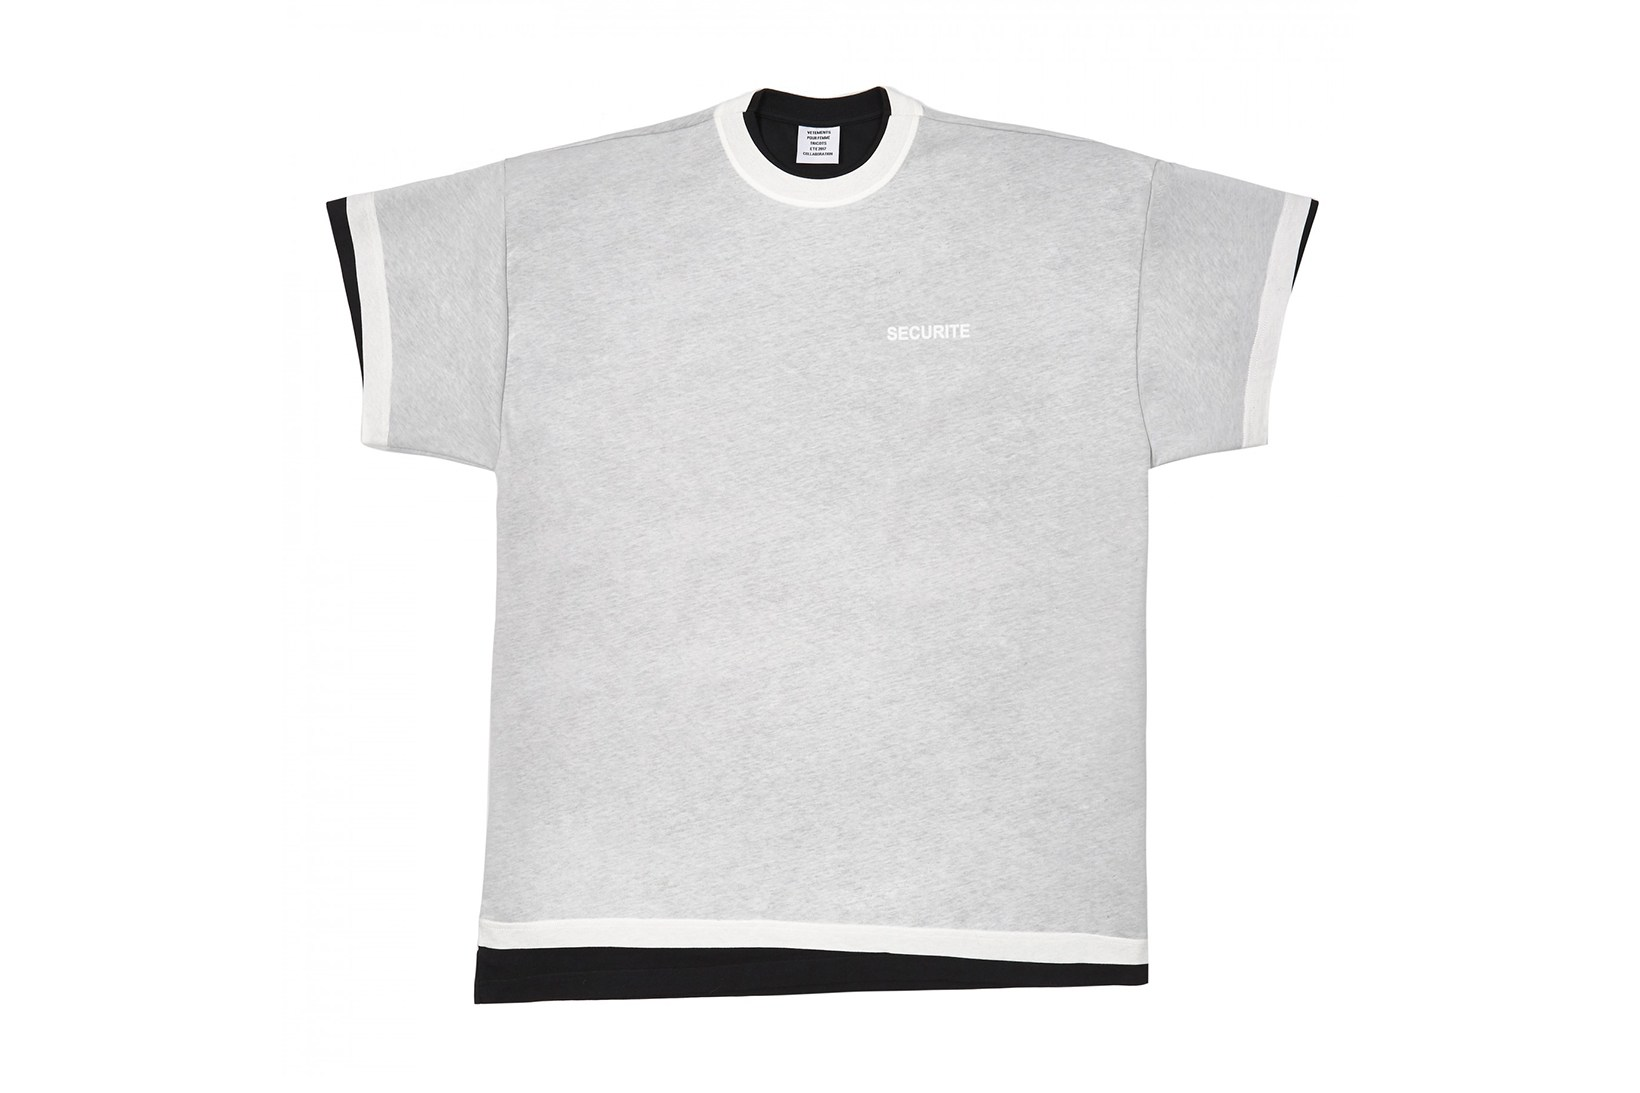 vetements-securite-double-t-shirt-4